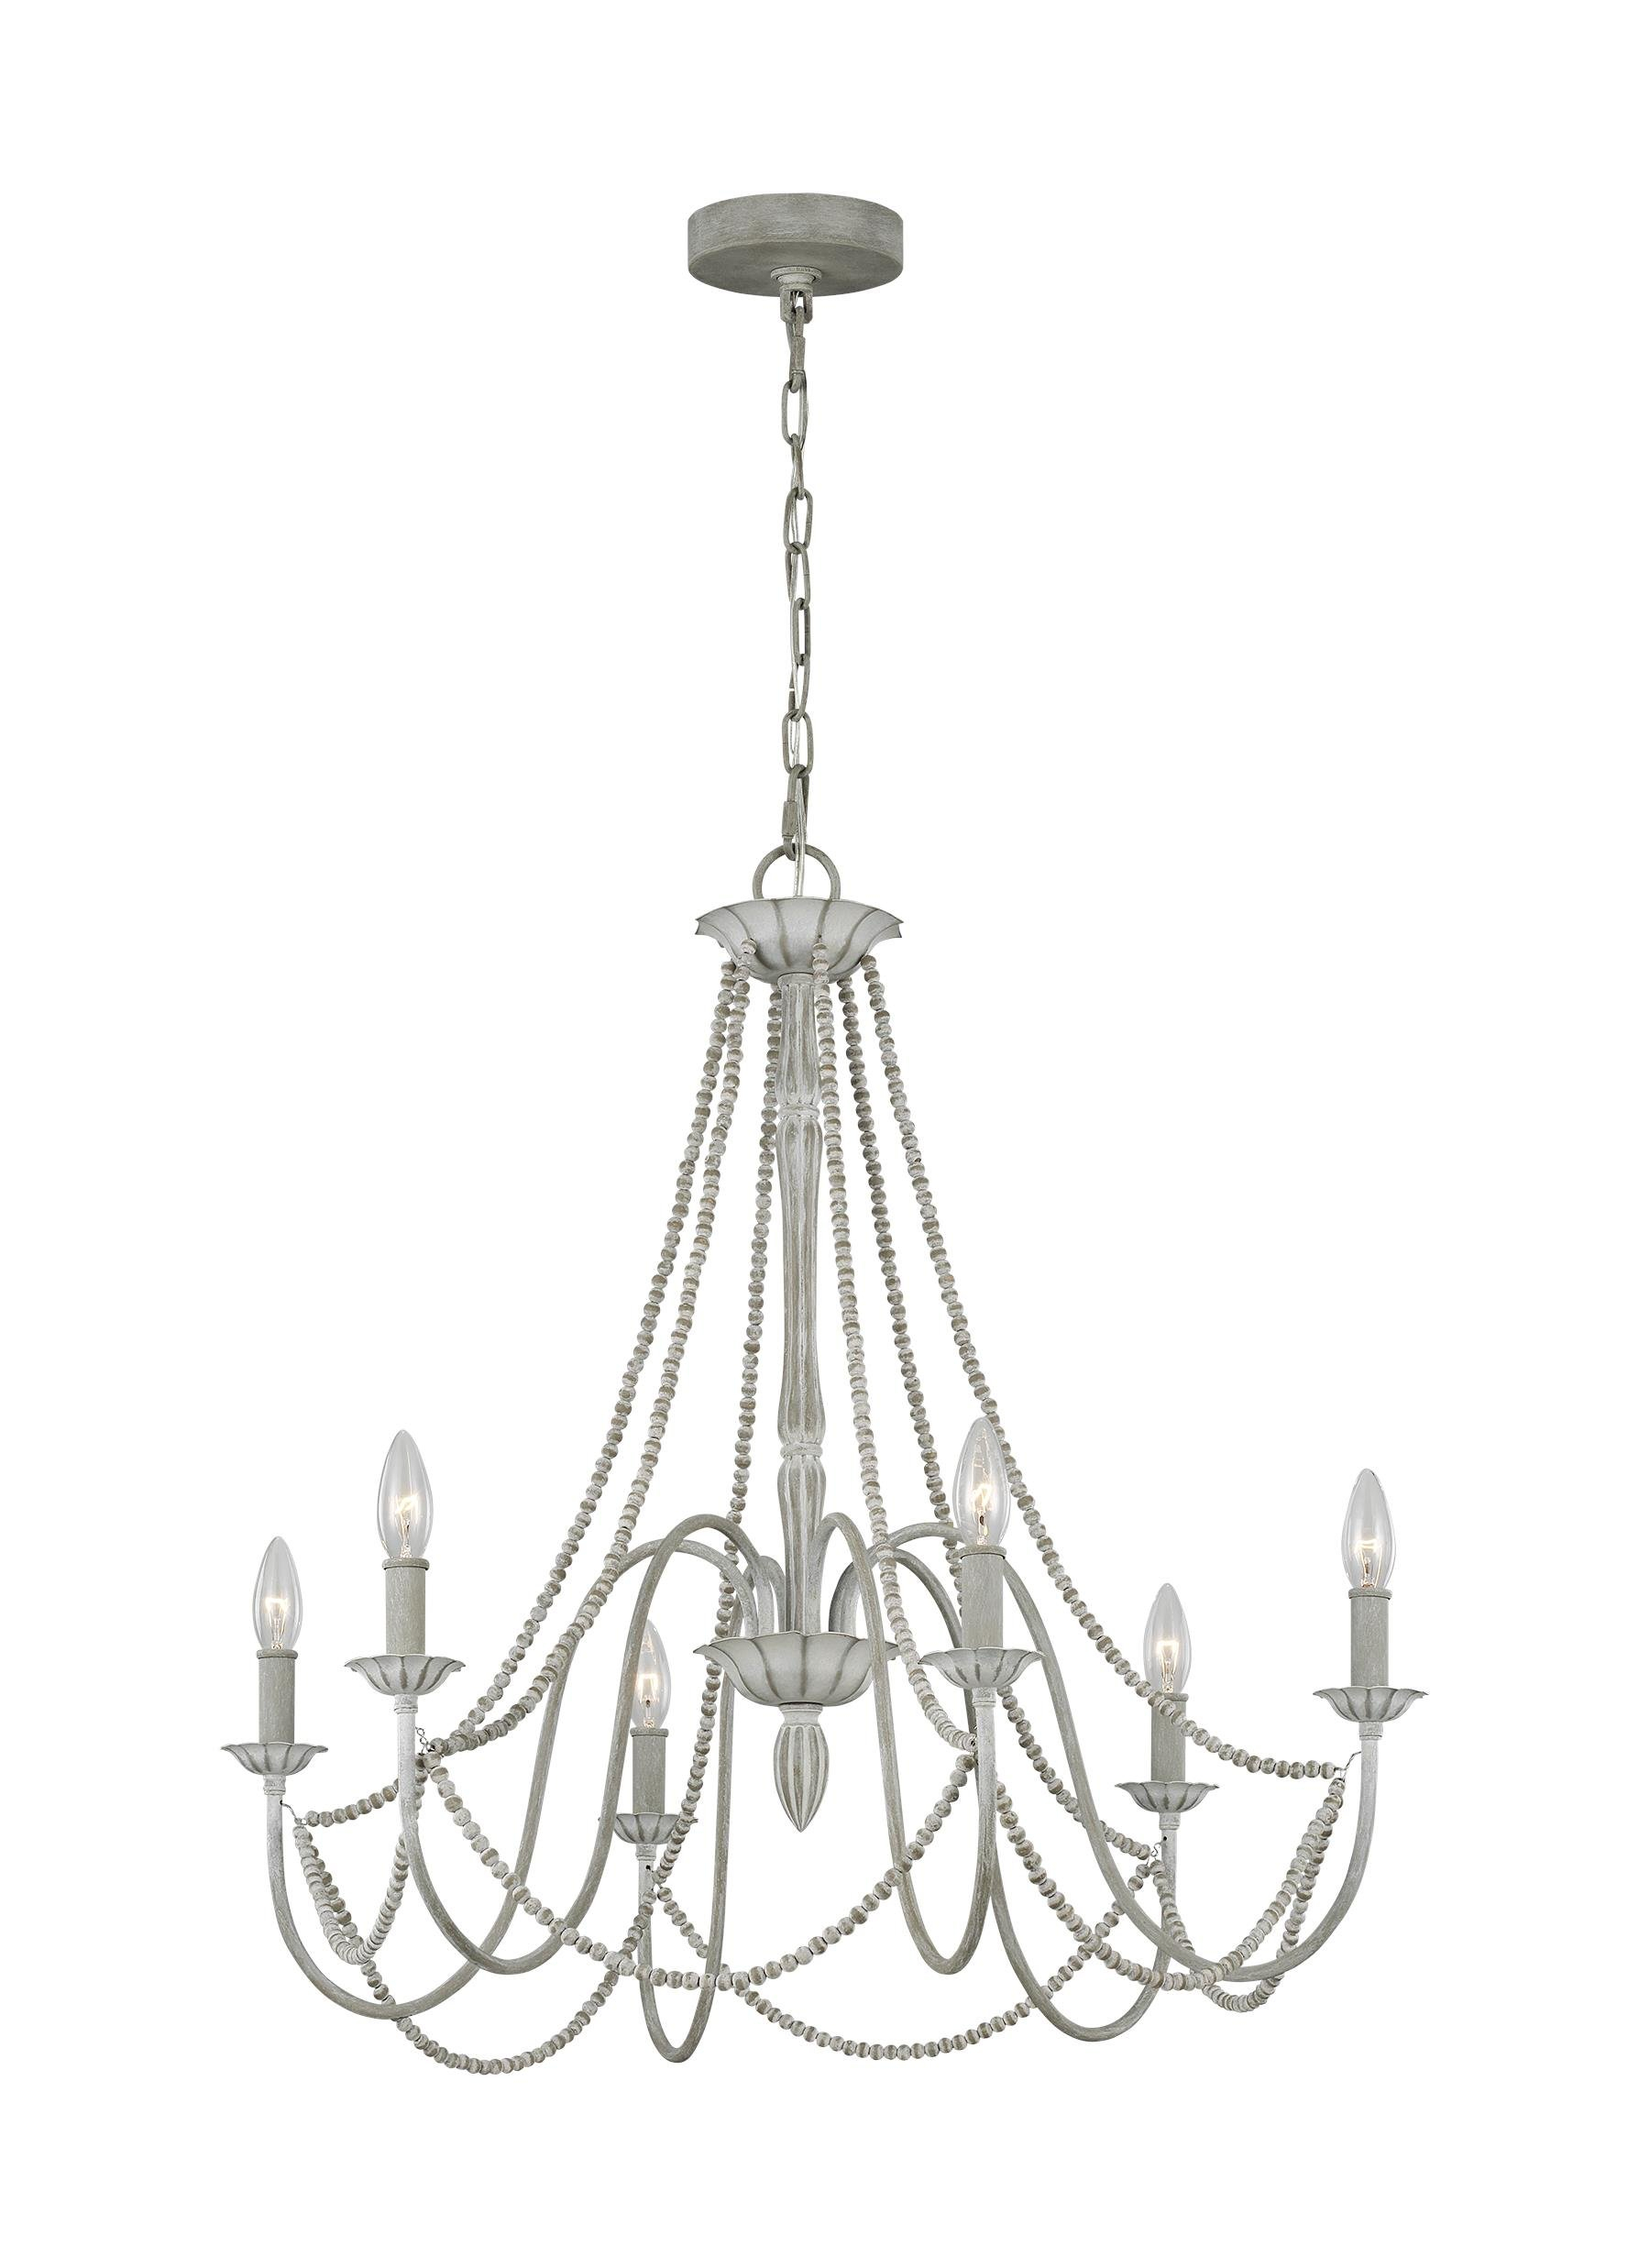 Caufield 6 Light Candle Style Chandelier In Diaz 6 Light Candle Style Chandeliers (View 18 of 30)